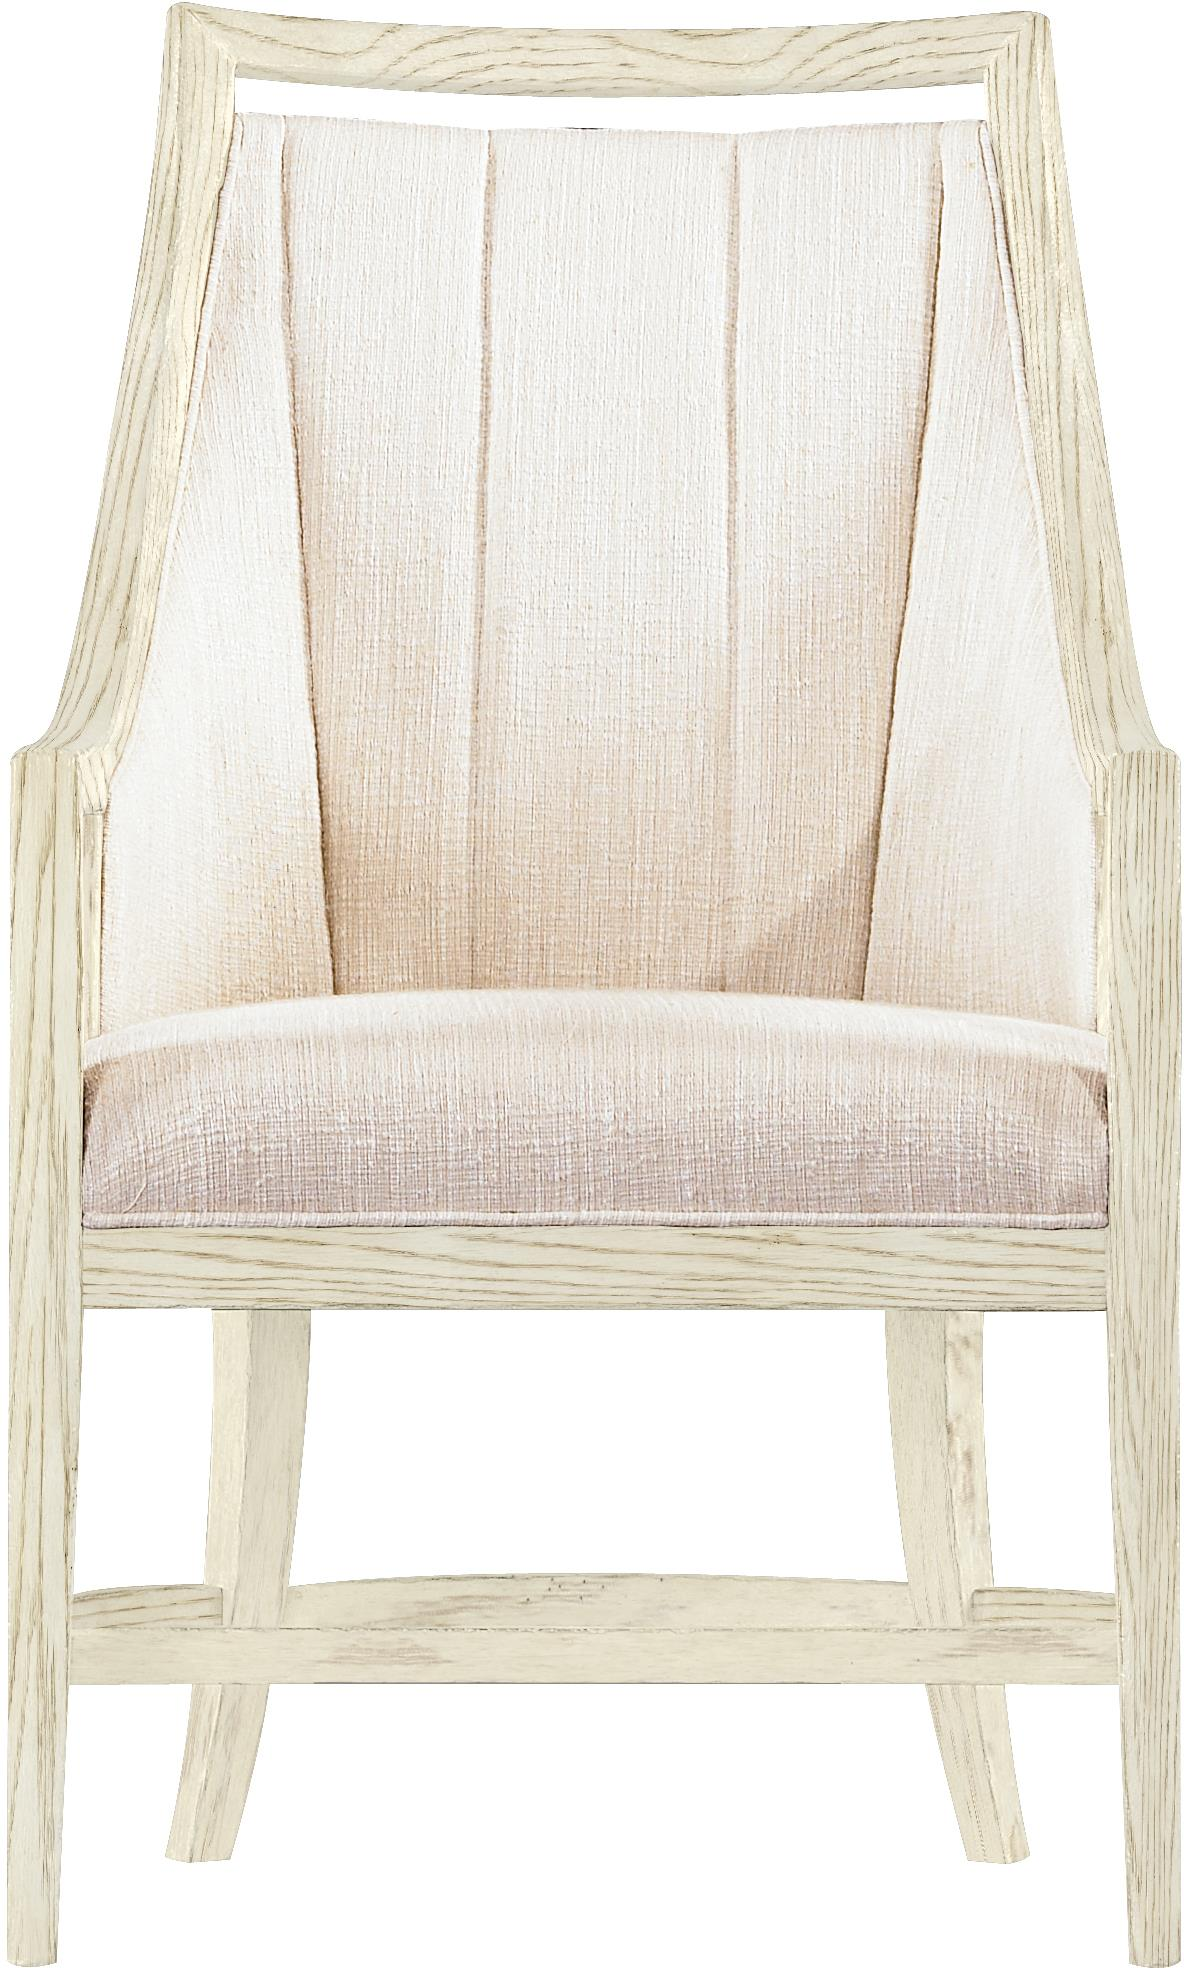 Stanley Furniture Coastal Living Resort By the Bay Host Chair - Item Number: 062-A1-75